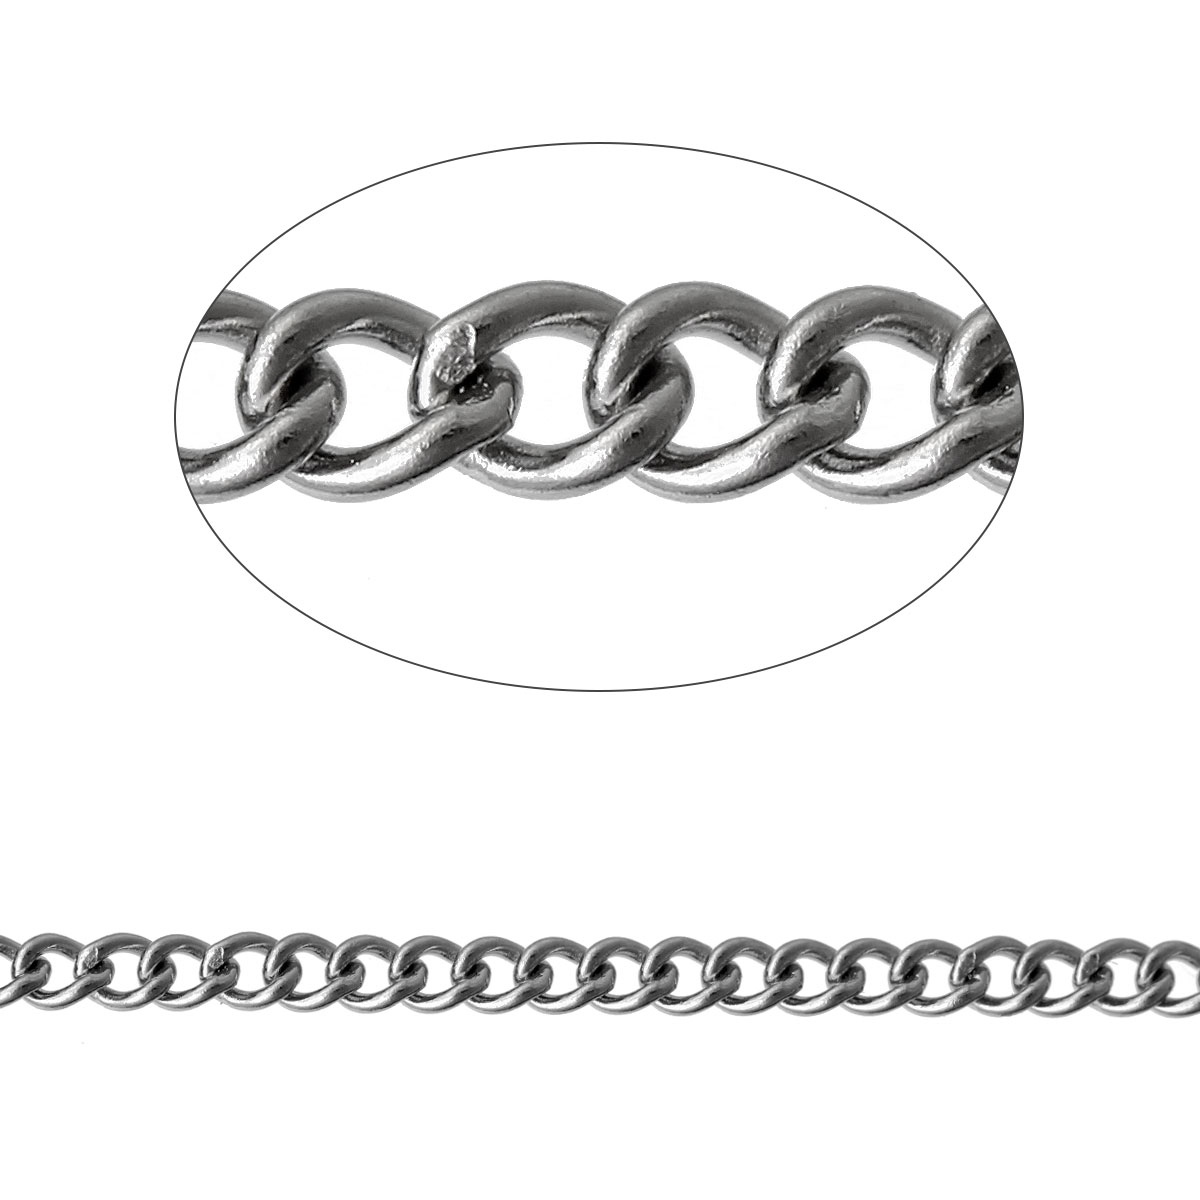 "304 Stainless Steel Link Curb Chain Findings Oval Silver Tone 2.5mm( 1/8"") x 2mm( 1/8""), 1 M 2016 new(China (Mainland))"